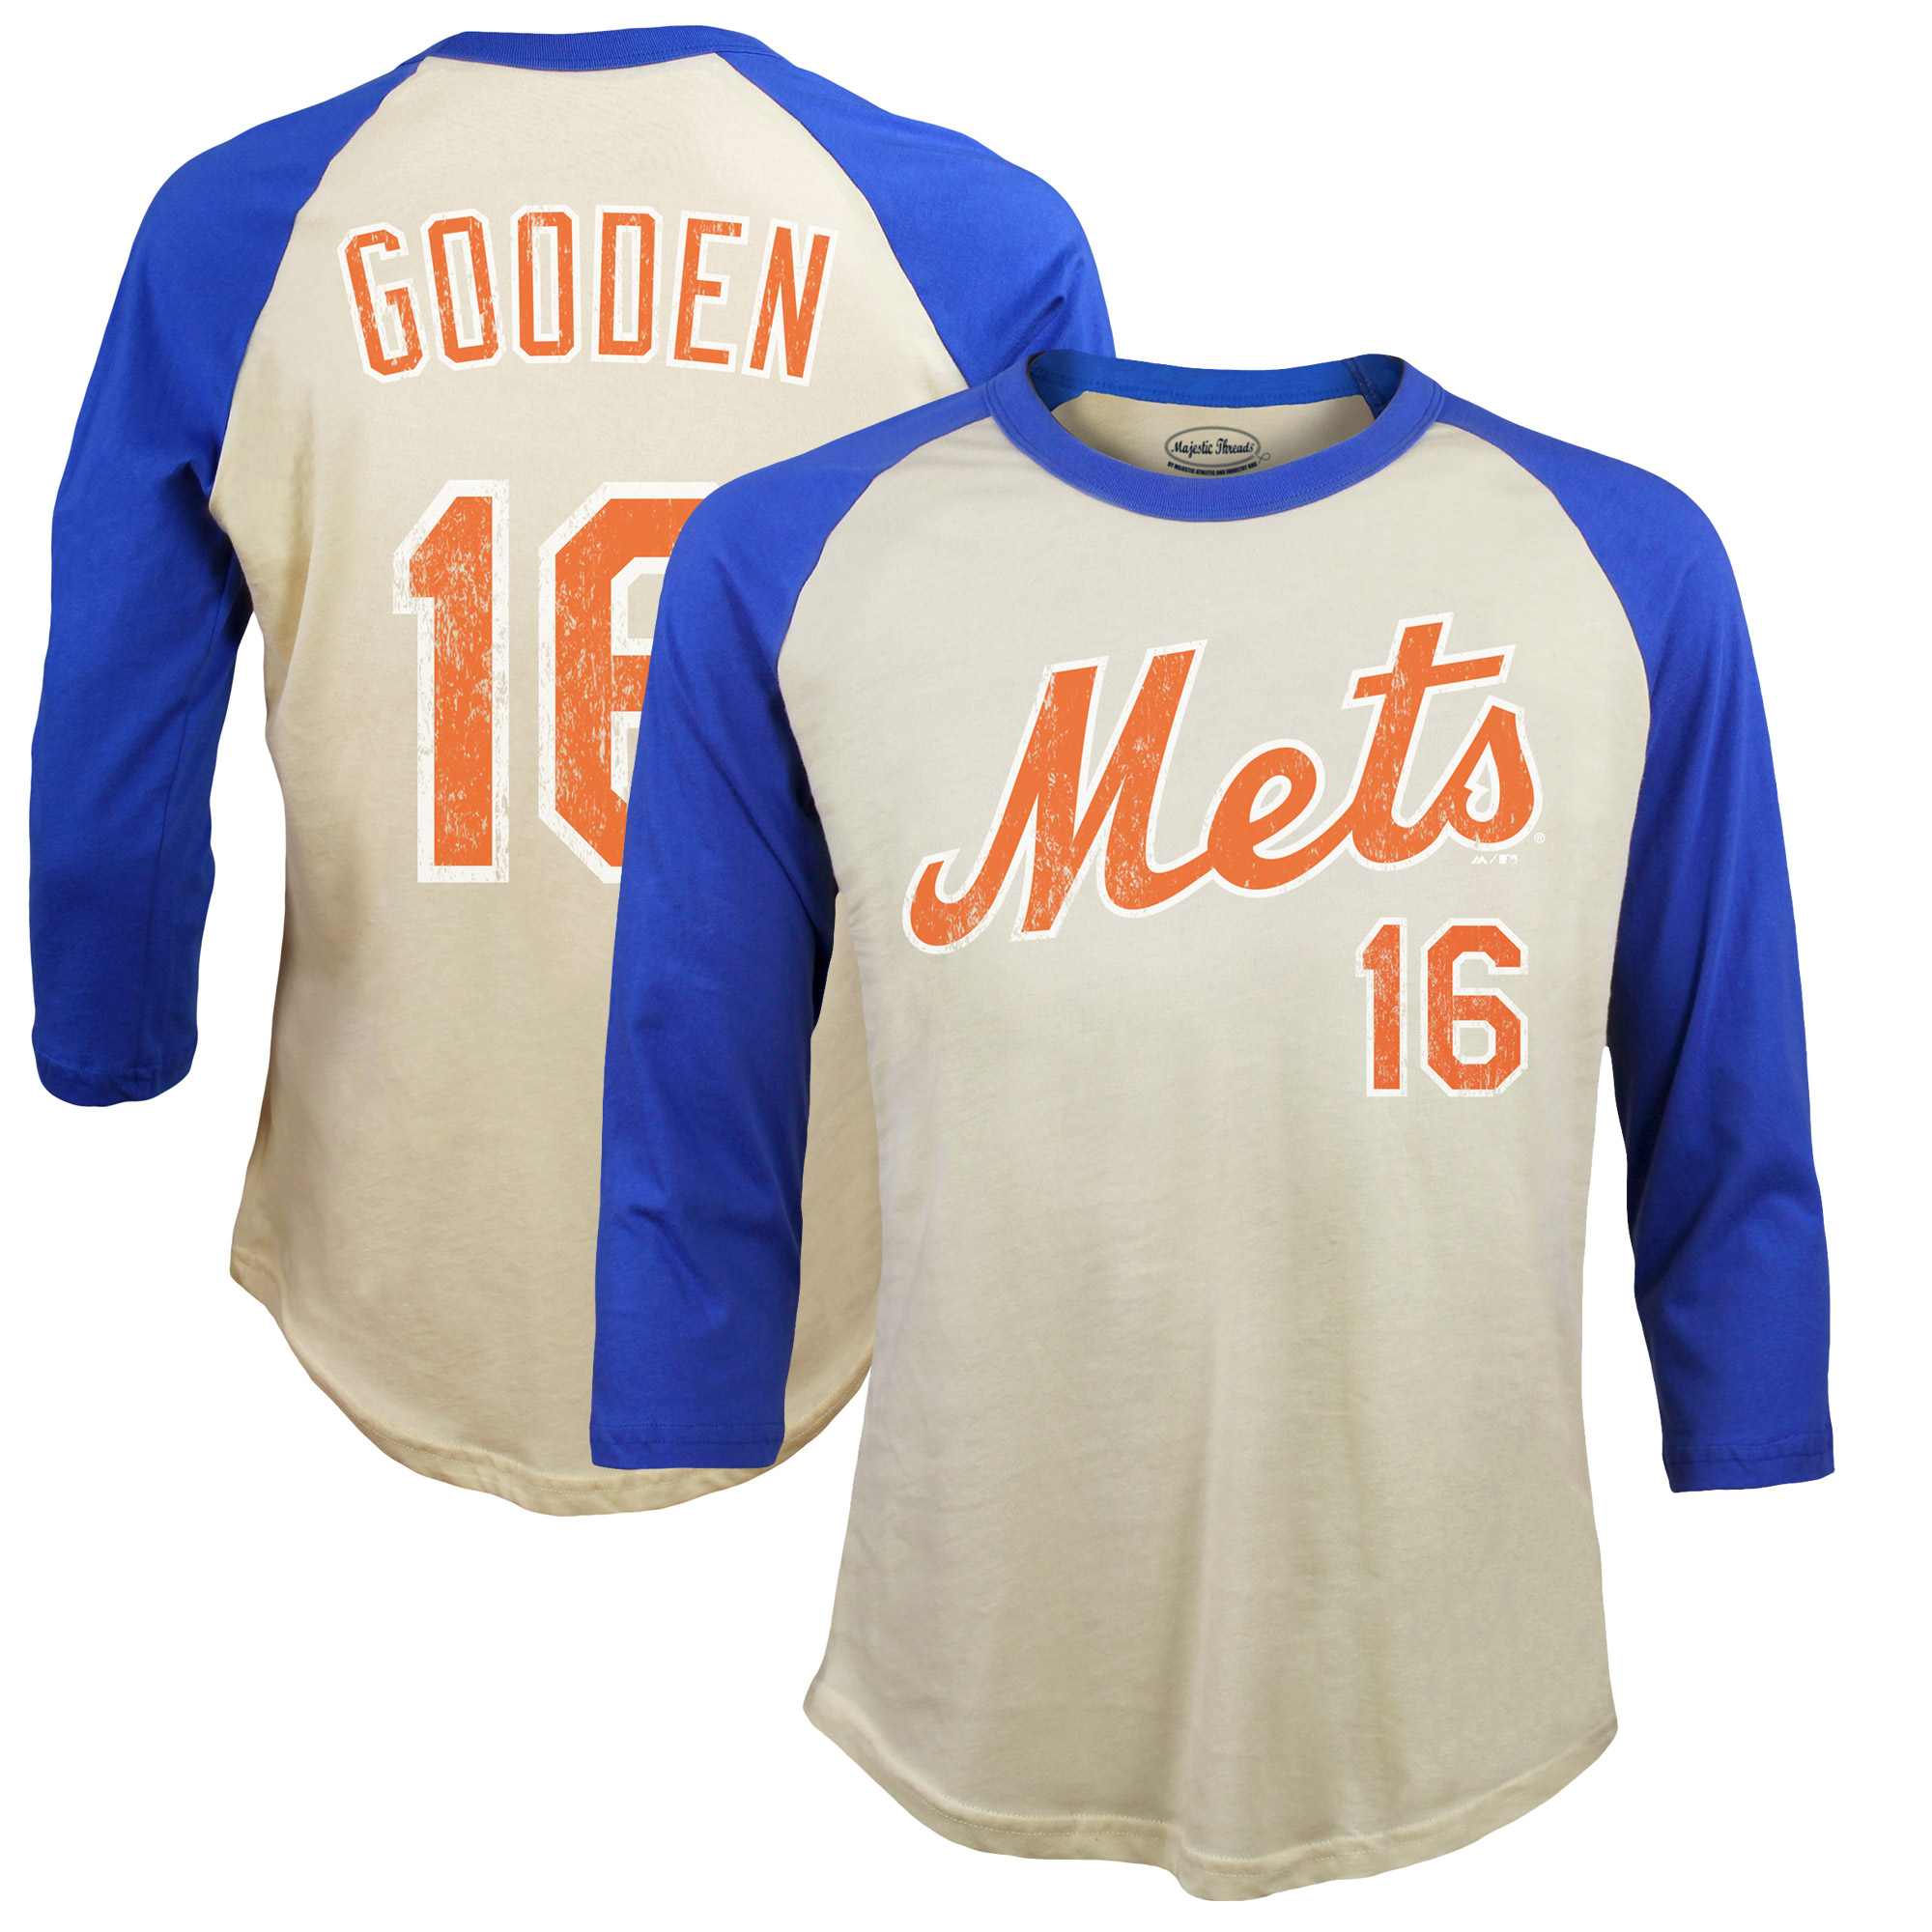 Dwight Gooden New York Mets Majestic Threads Softhand Cotton Cooperstown 3/4-Sleeve Raglan T-Shirt - Cream